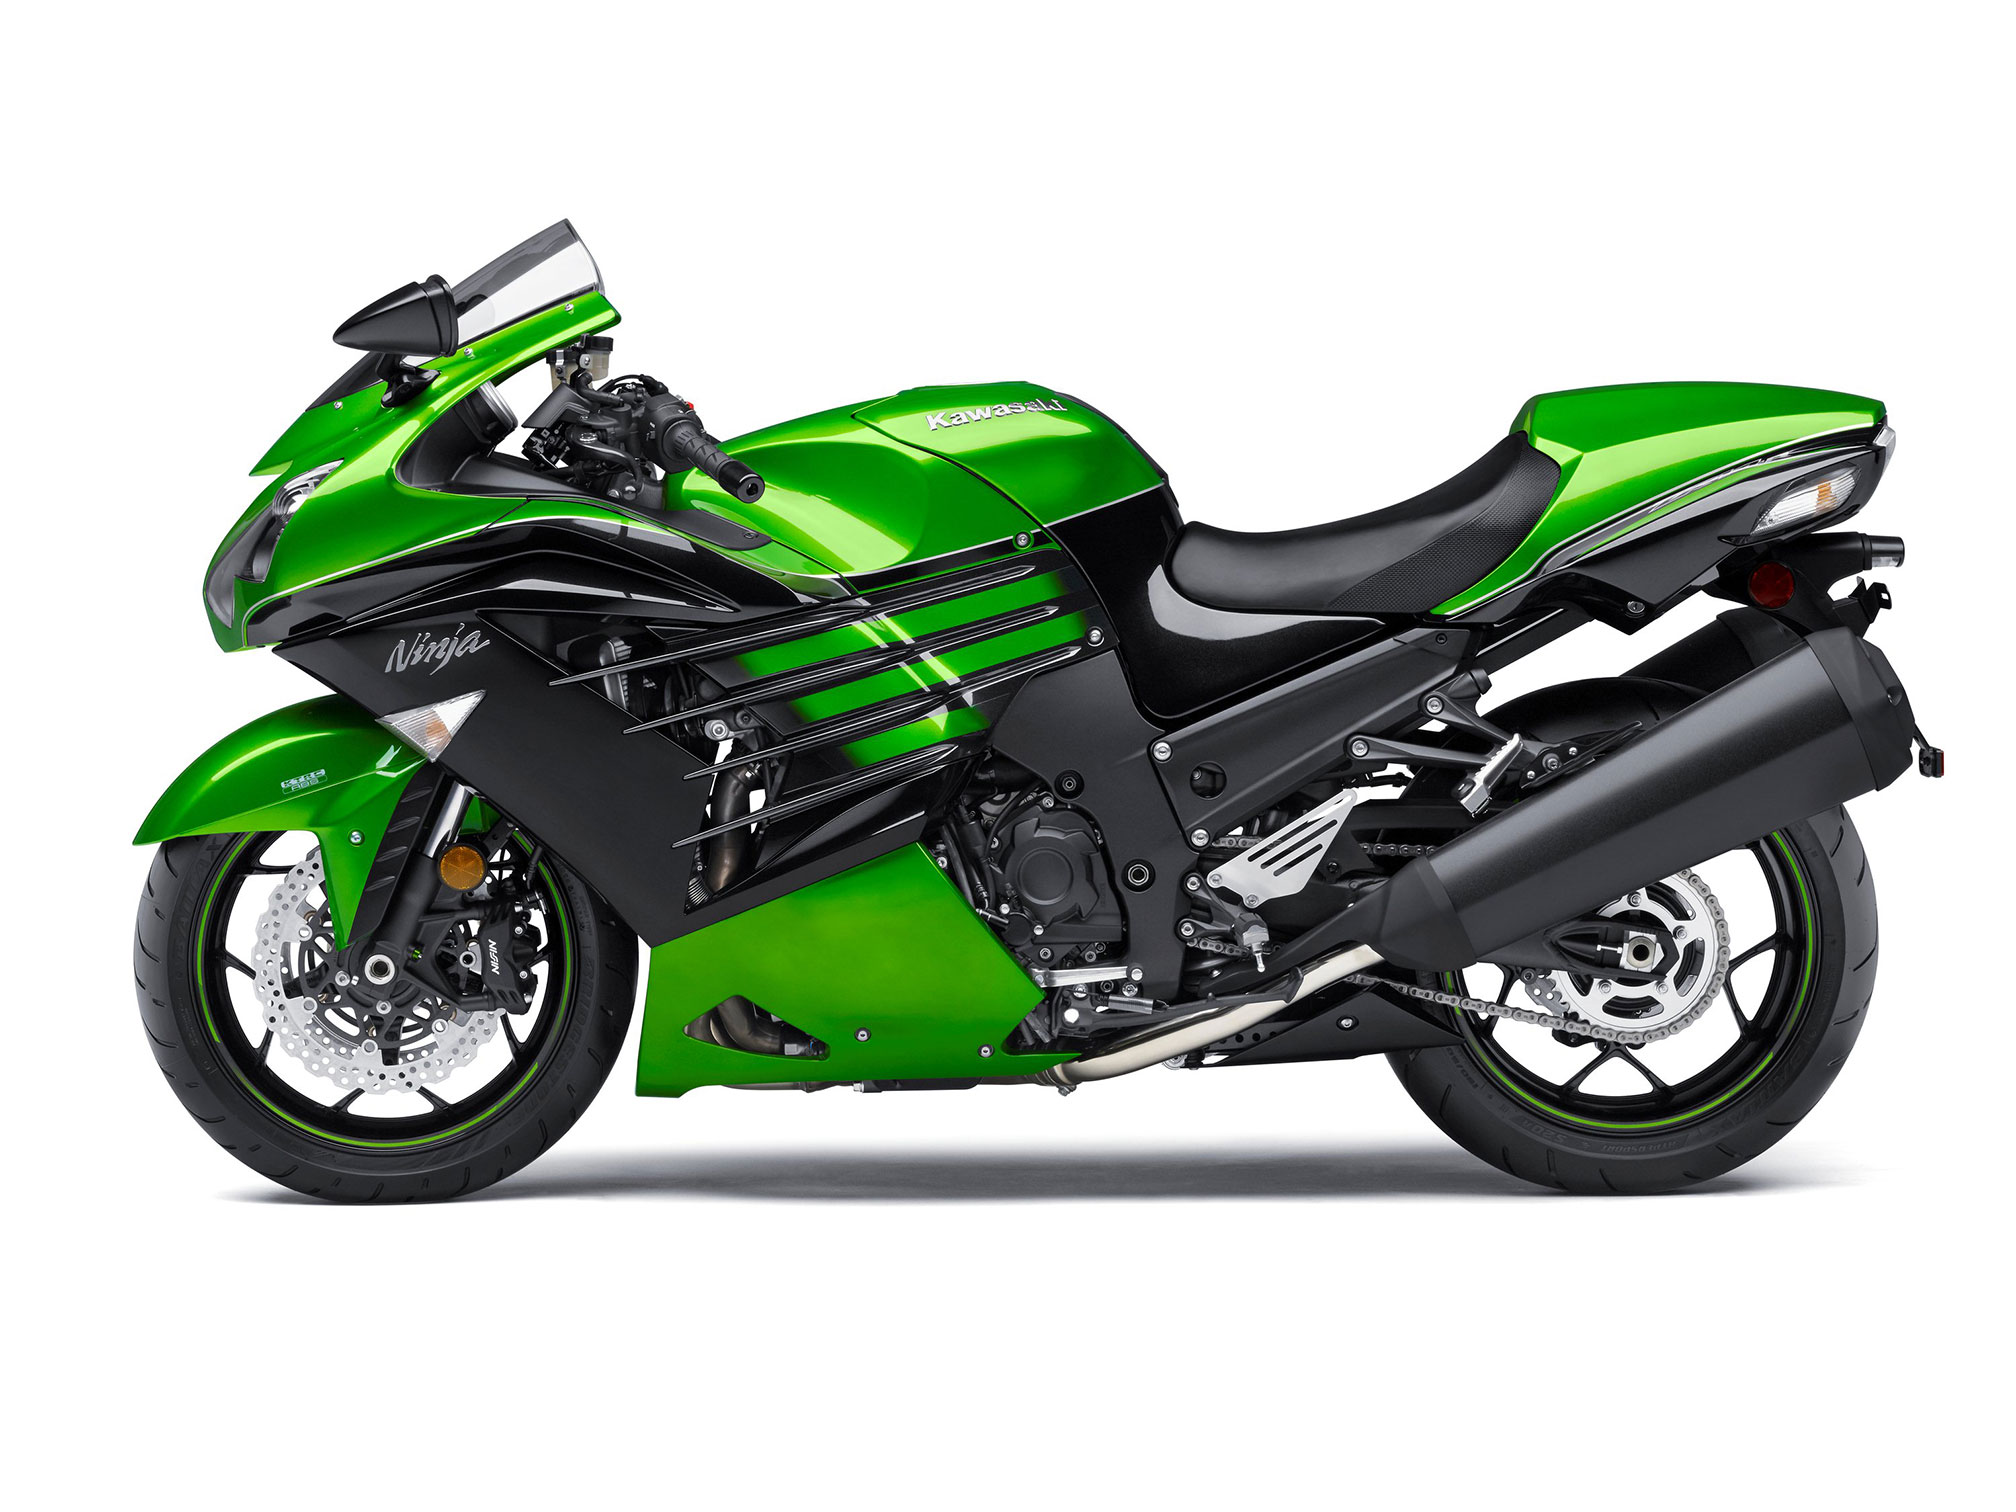 2016 kawasaki ninja zx-14r abs review